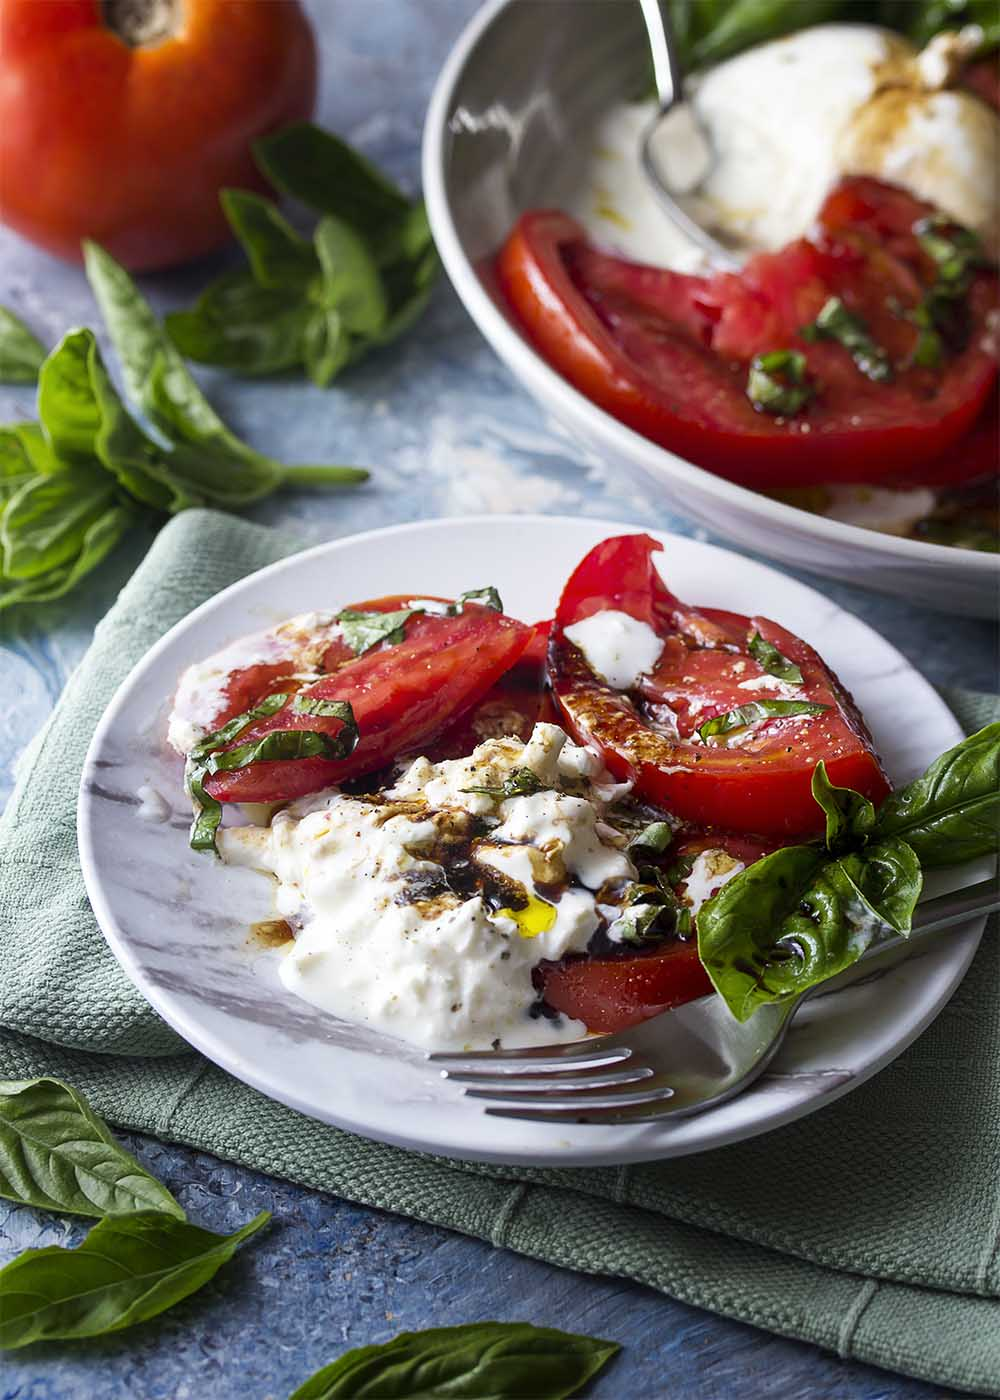 A small plate piled with creamy soft burrata, slices of ripe tomatoes, and fresh picked basil leaves. Extra virgin olive oil and thick balsamic drizzled over the top.